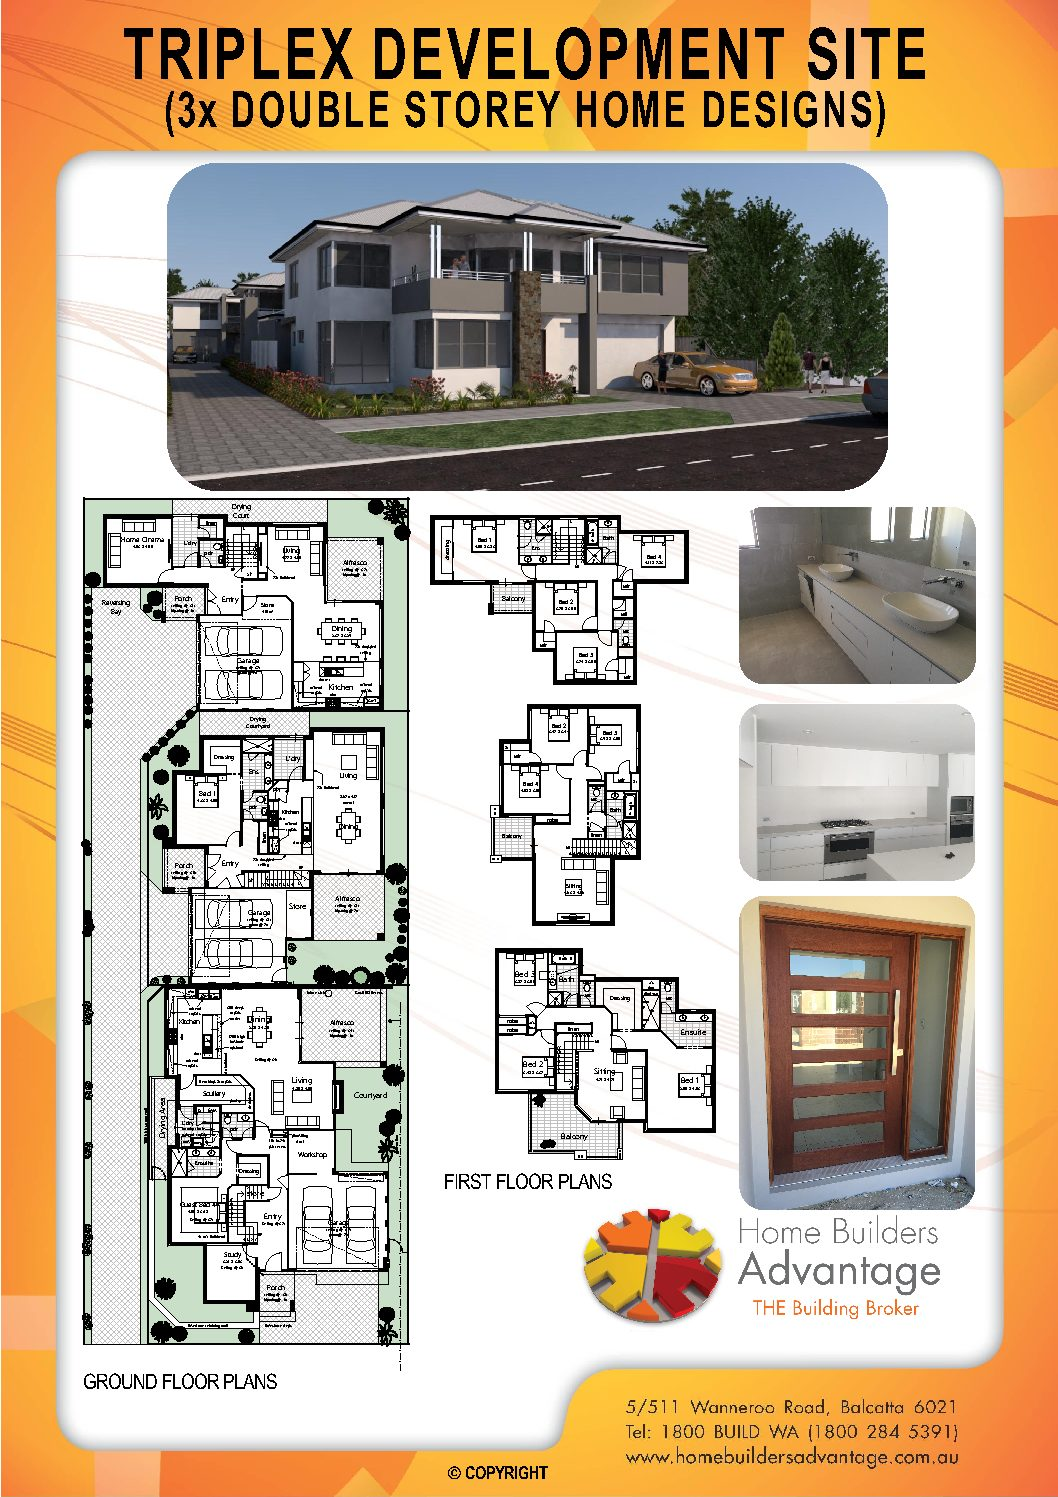 Triplex Design Floor Plans